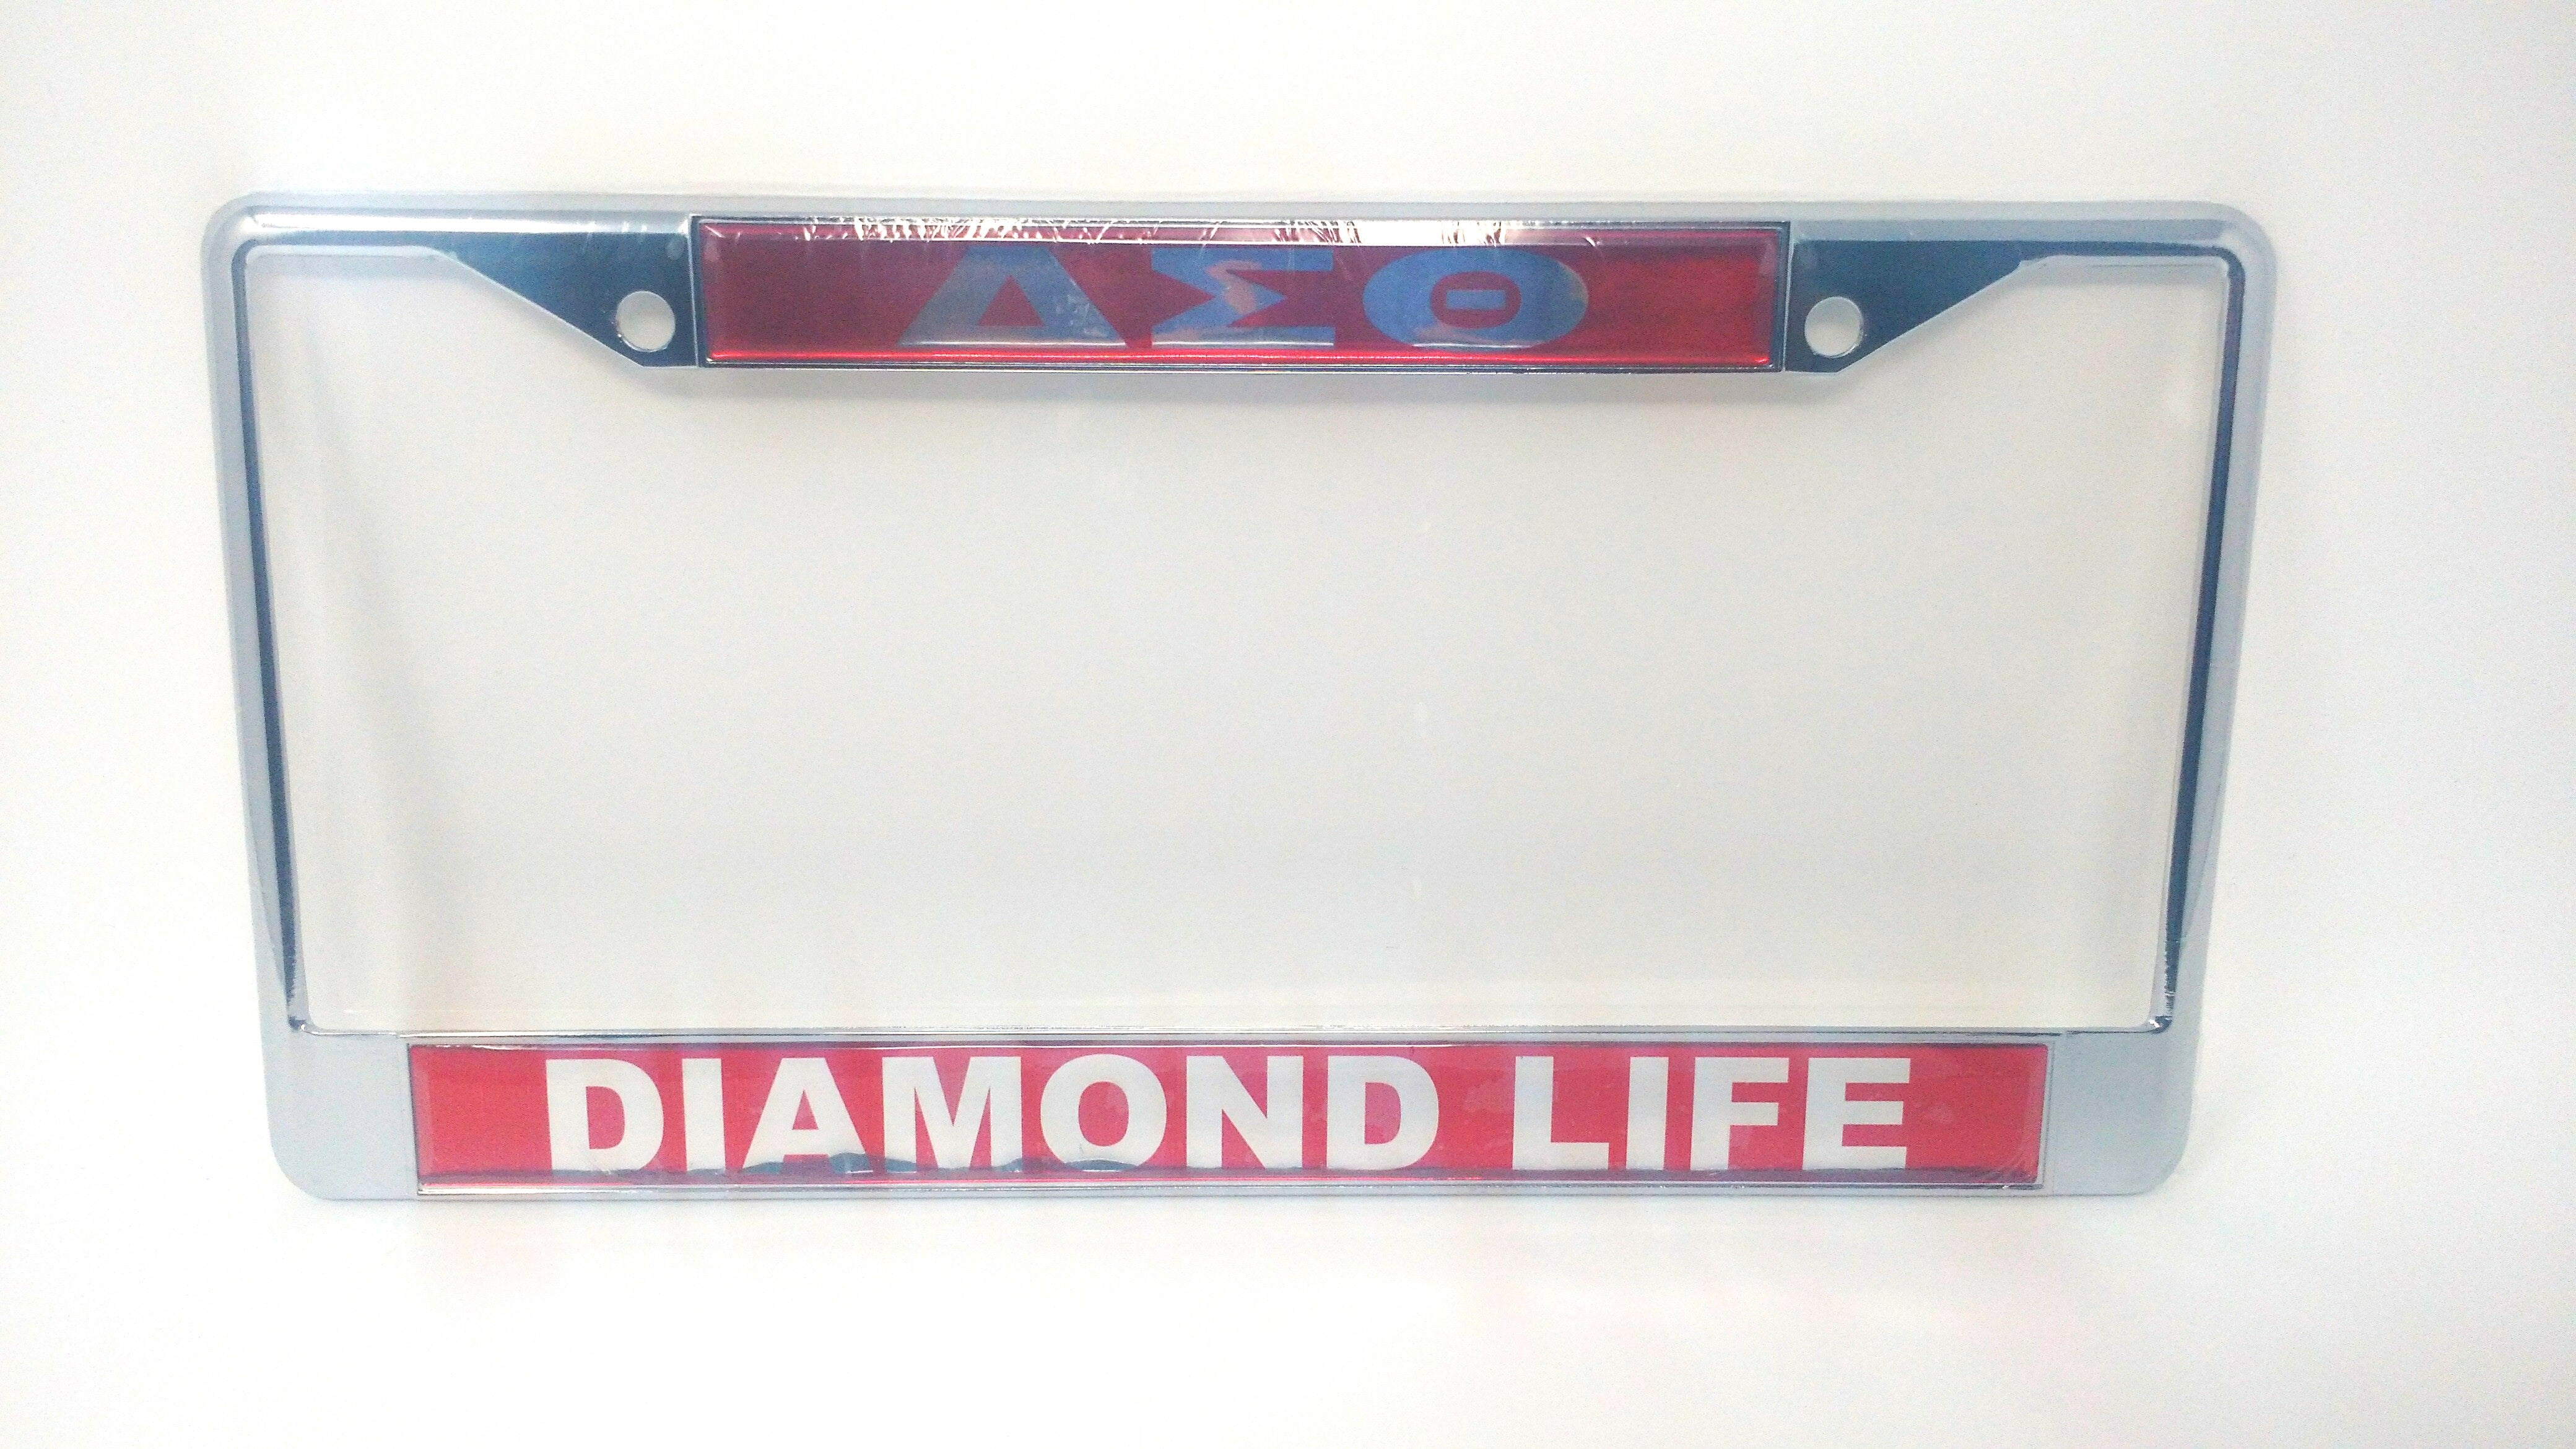 Delta Sigma Theta Mirror License Plate Frame – Diamond Life